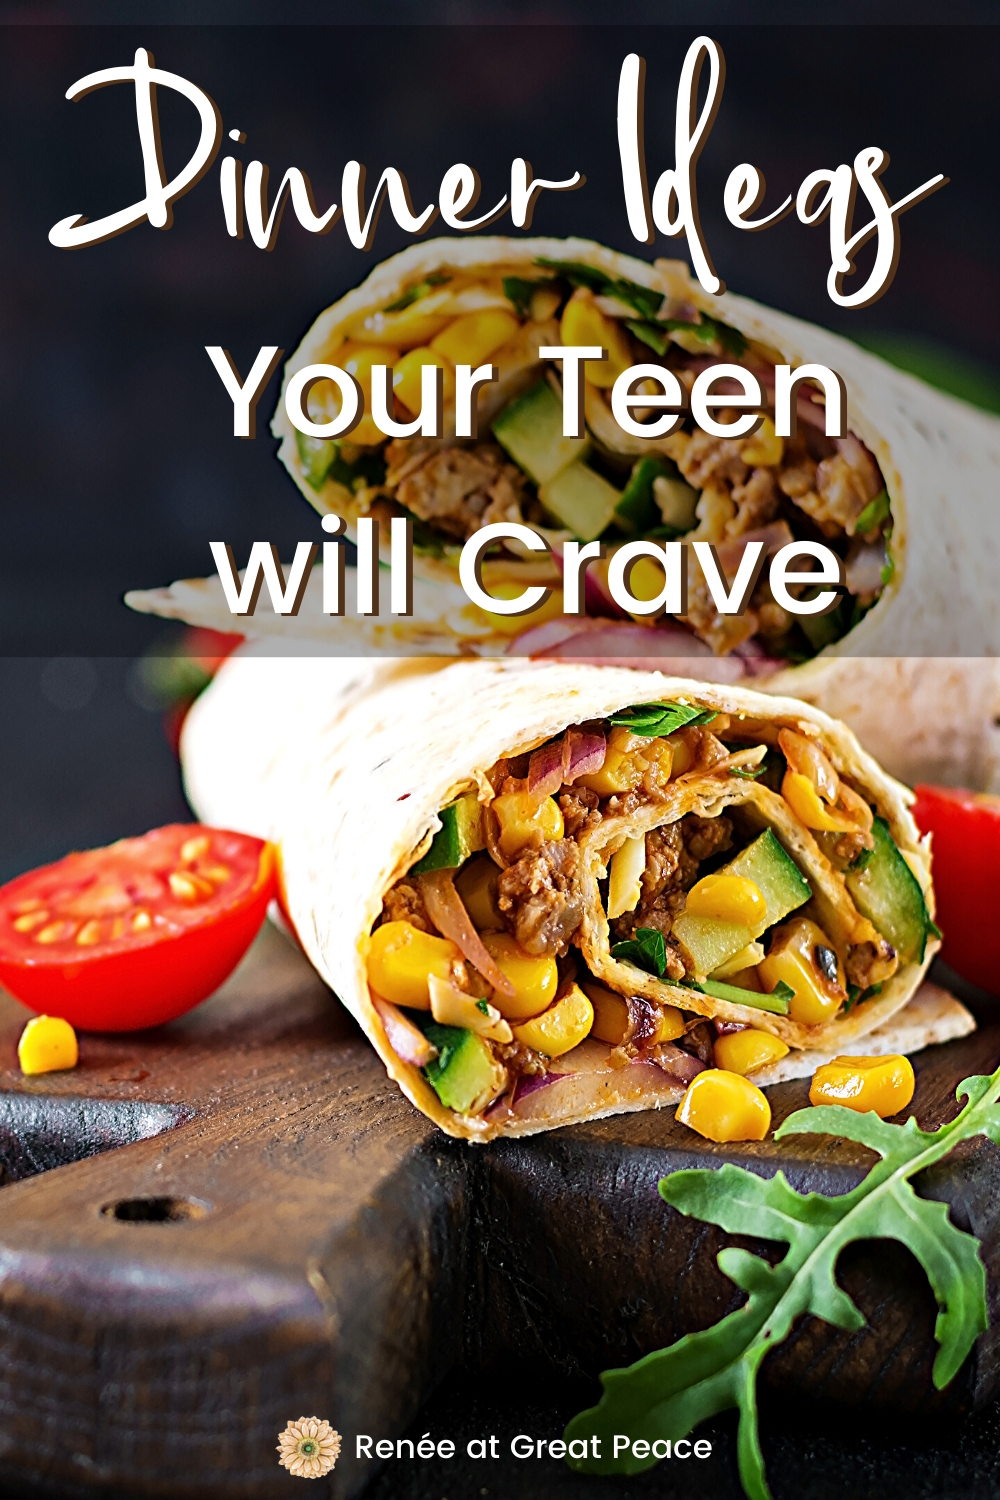 Dinner Ideas Your Teens will Crave